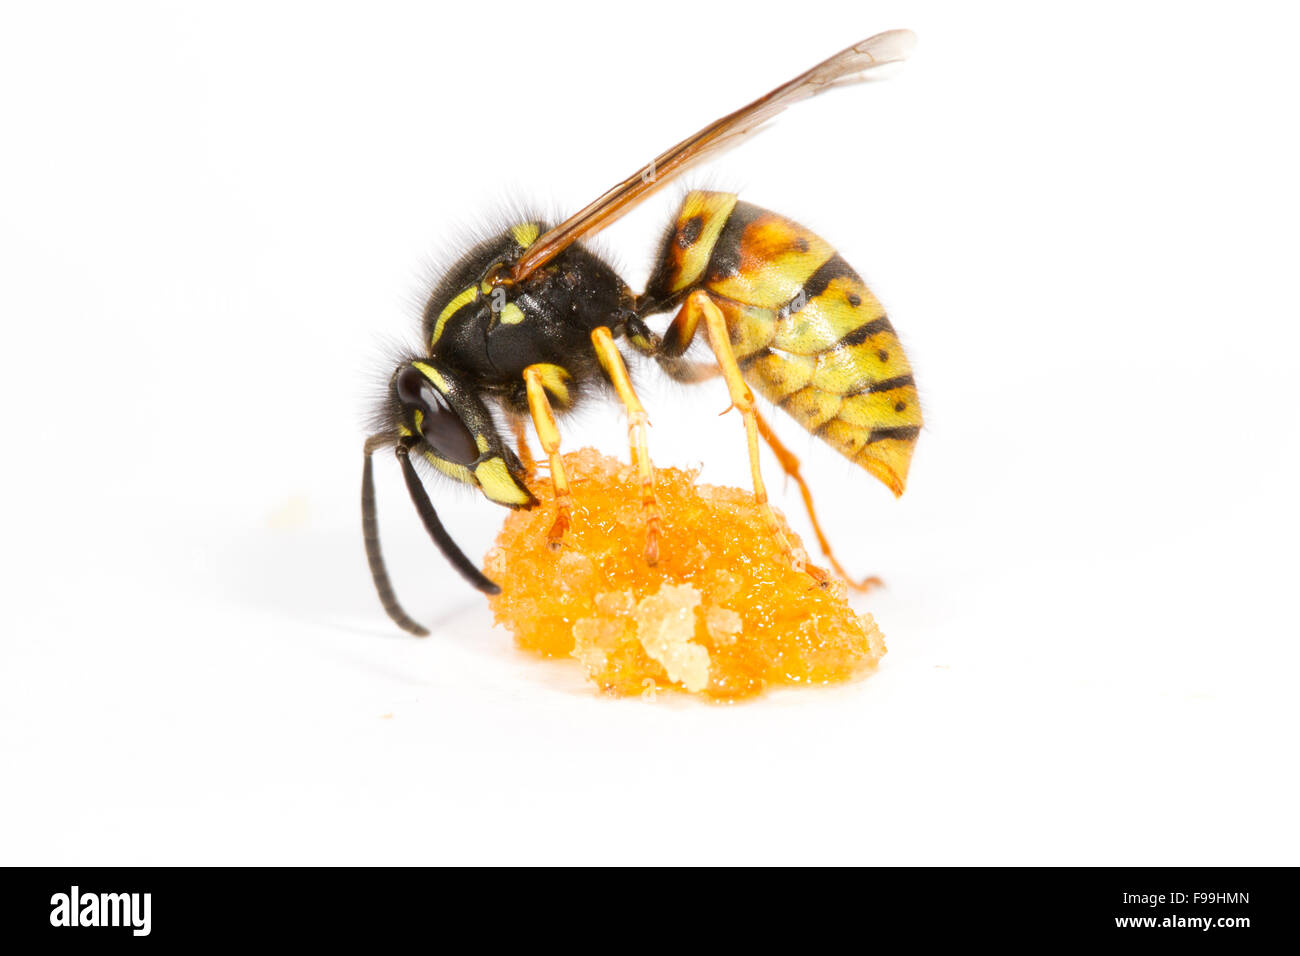 Red Wasp (Vespula rufa) adult worker feeding on honey against a white background. Powys, Wales, August. Stock Photo